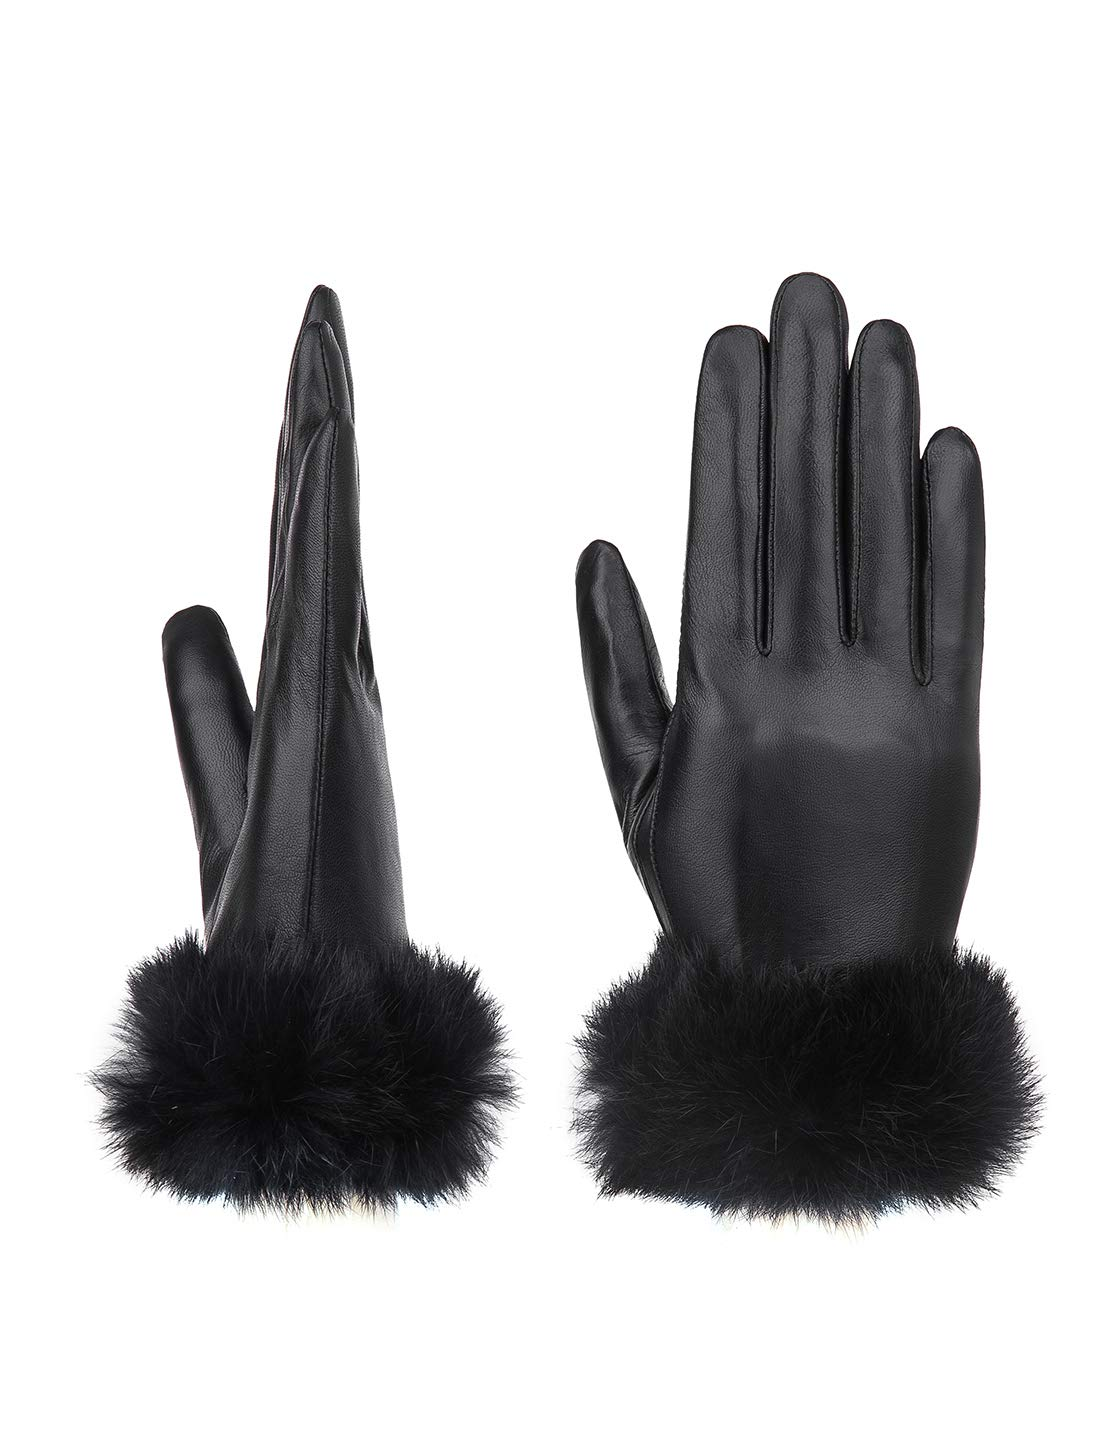 9a5765be2 YISEVEN Women's Touchscreen Lambskin Leather Gloves Wool Fur Cuffs Plain  Fleece Lined Real Luxury Stylish Elegant Warm Heated Winter Ladies  Accessories ...